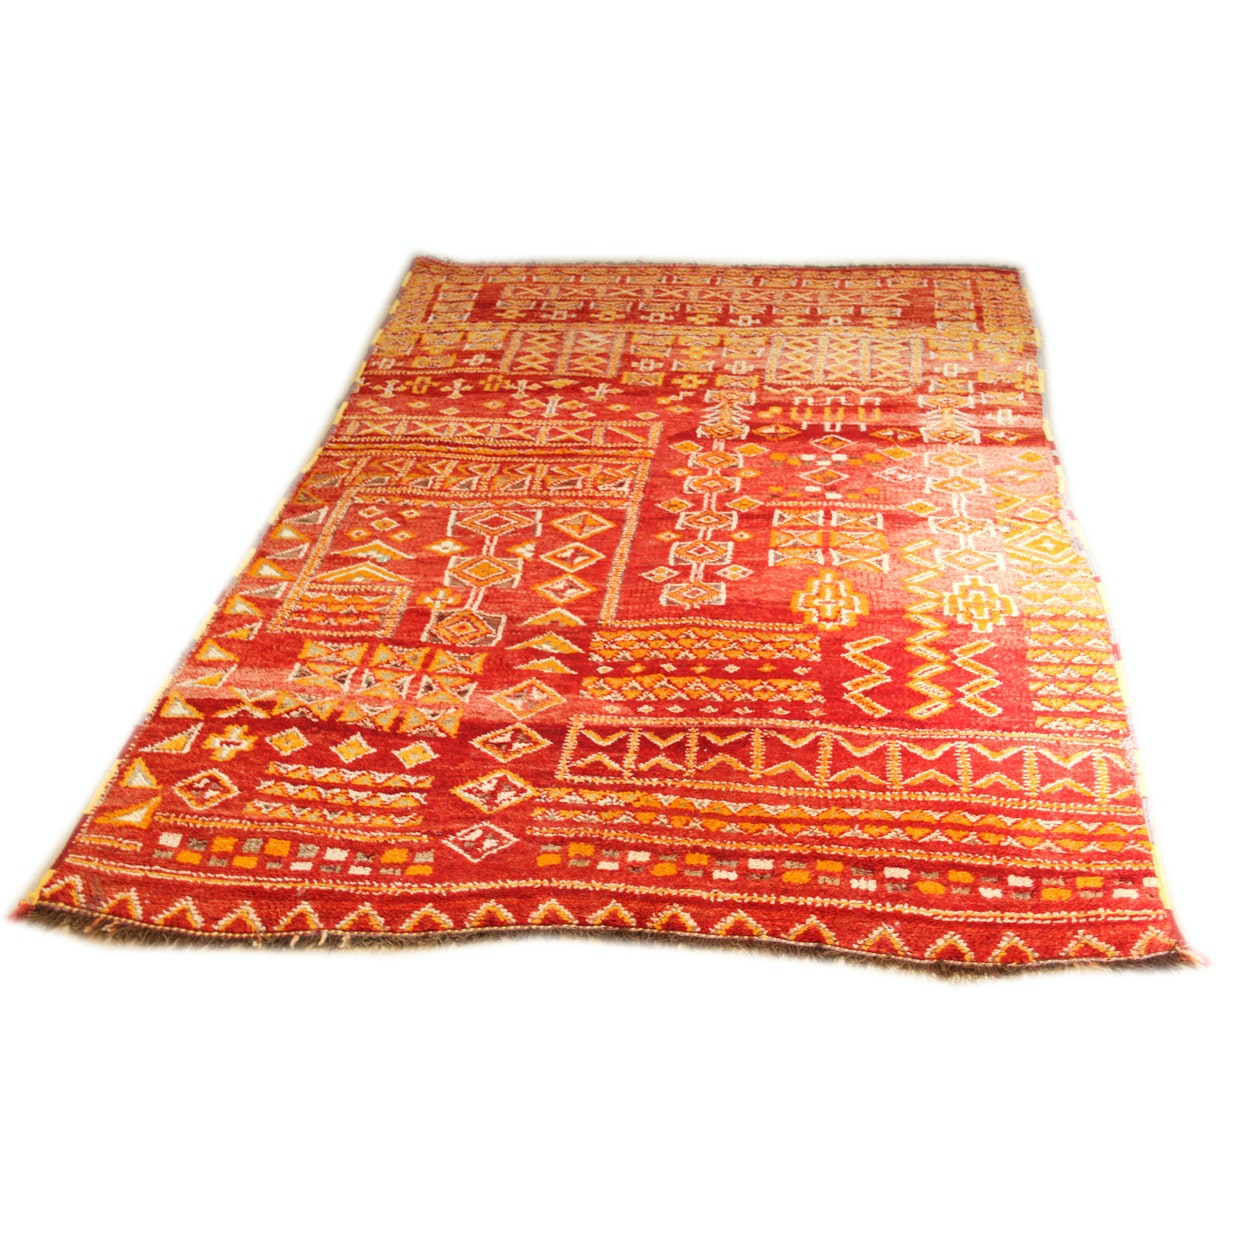 Hand-Knotted Moroccan Area Rug